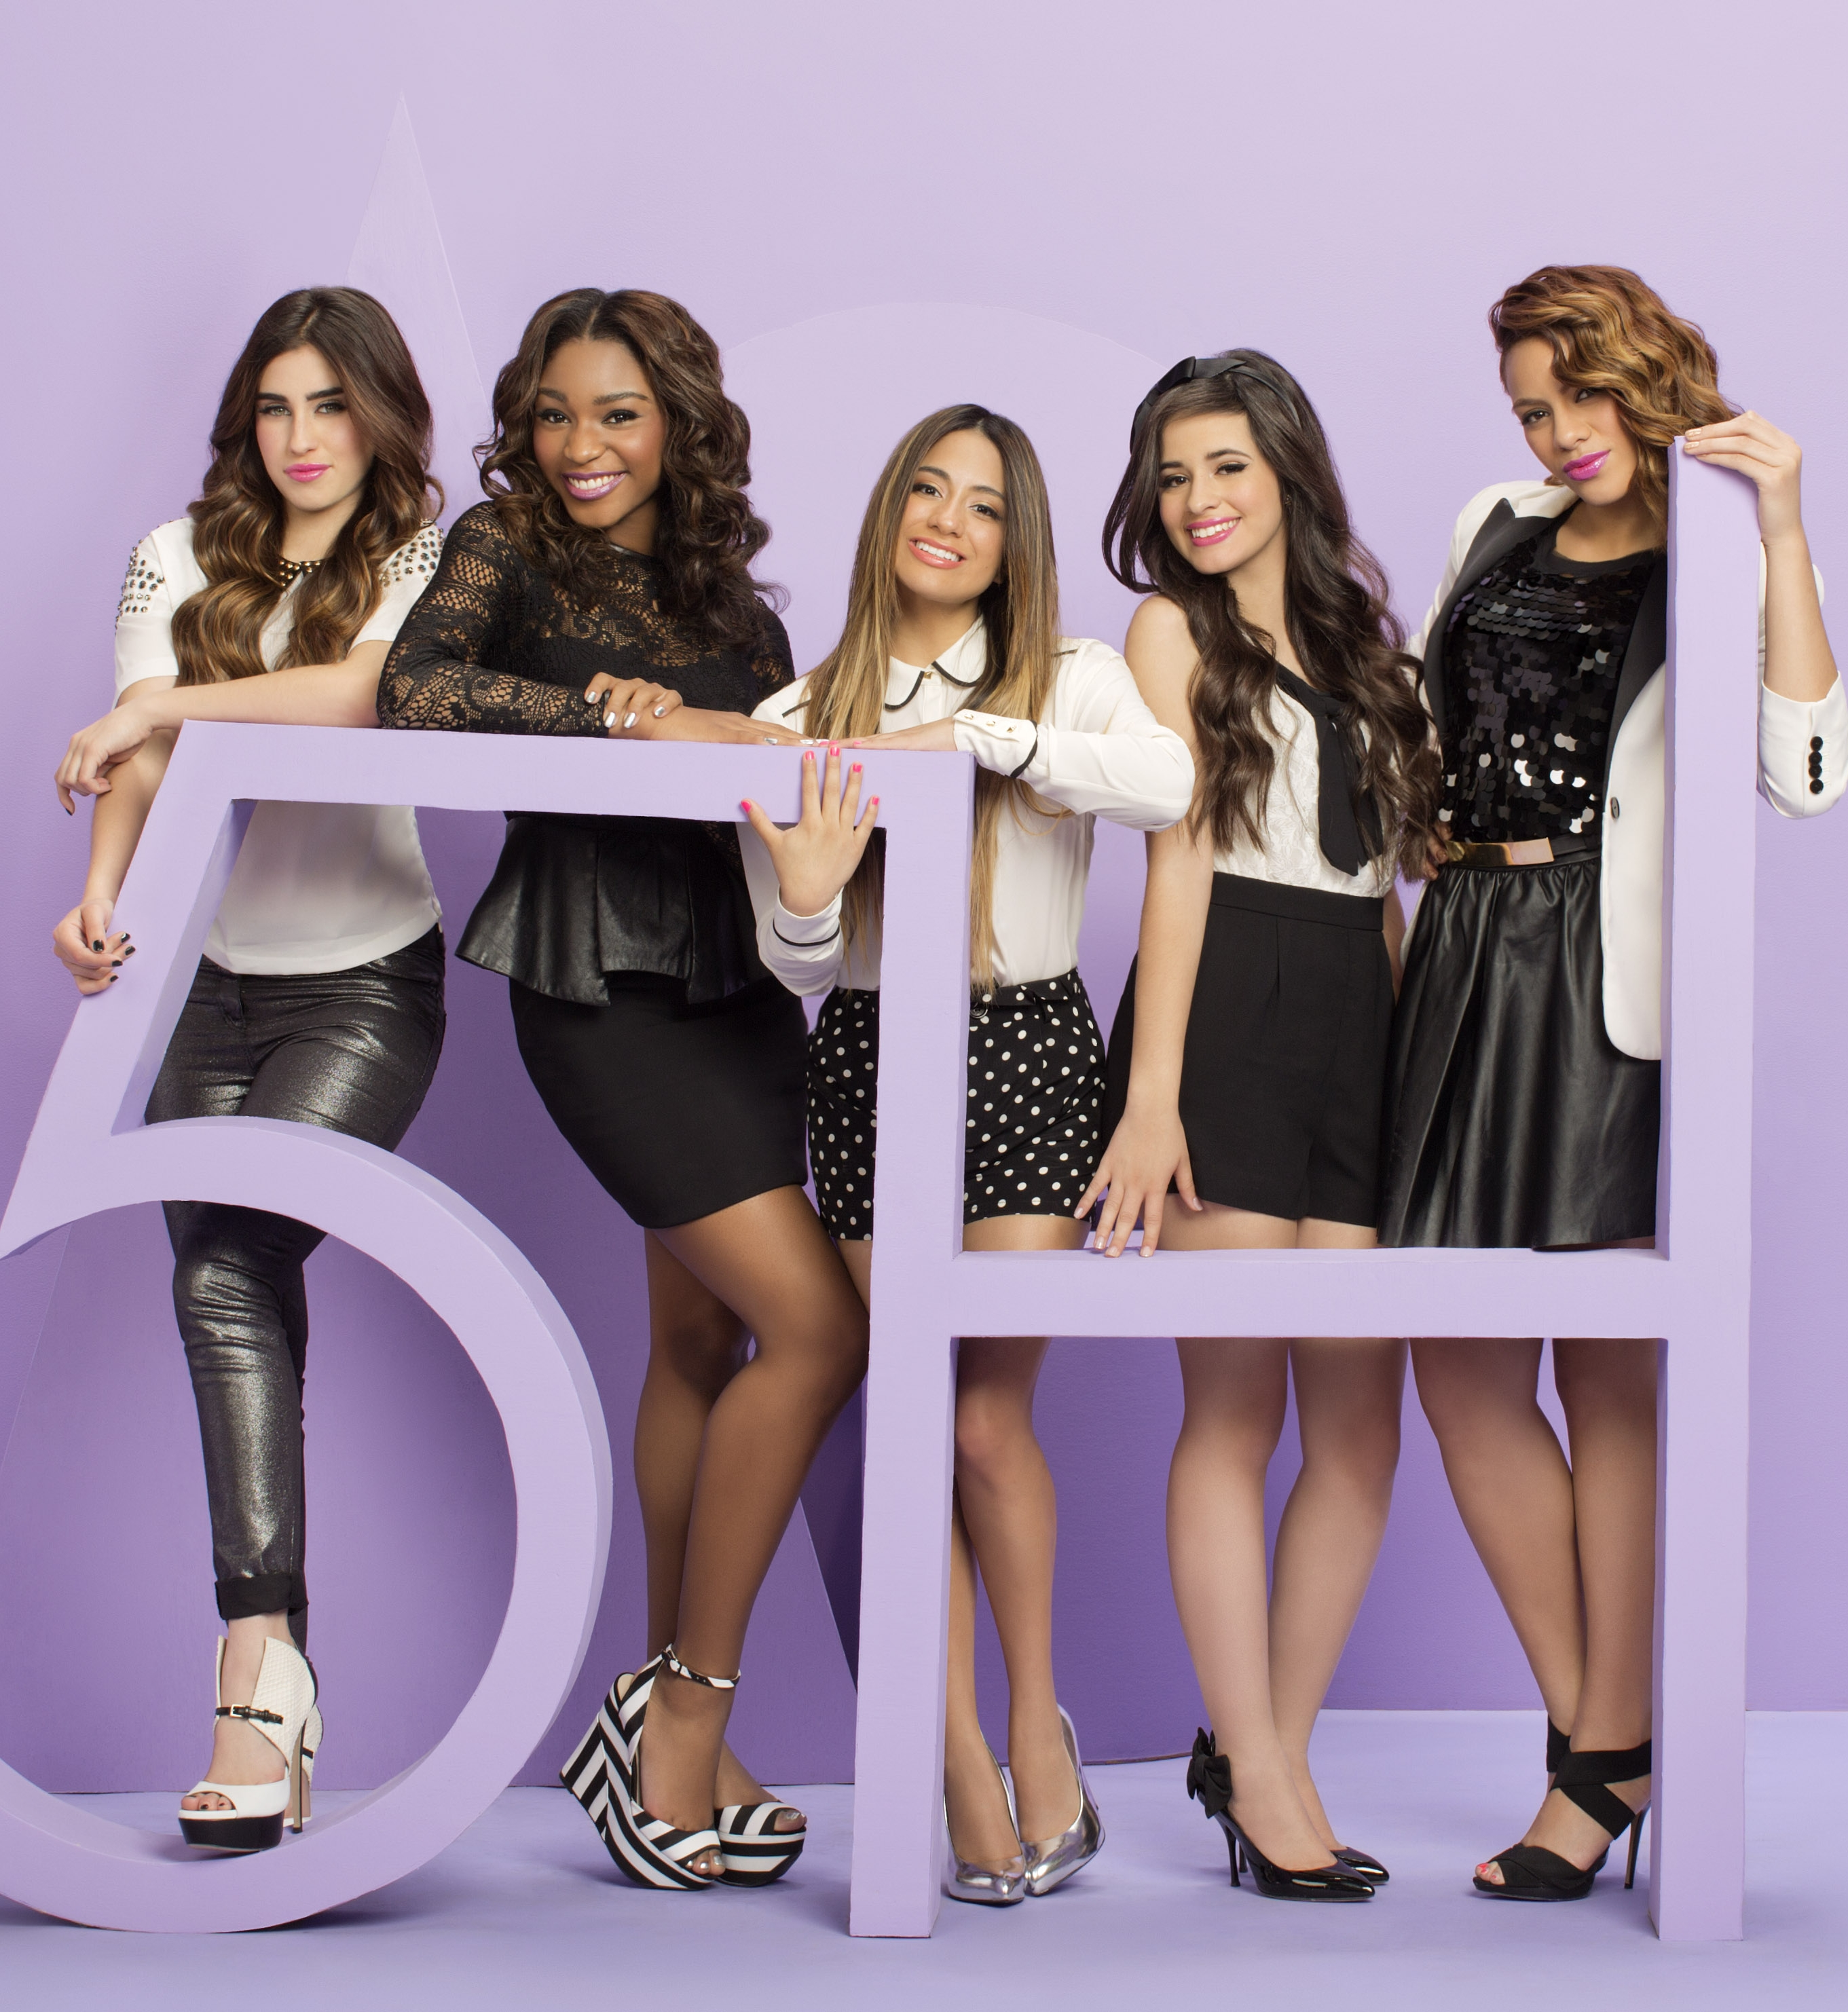 5h lauren and camila are dating 3